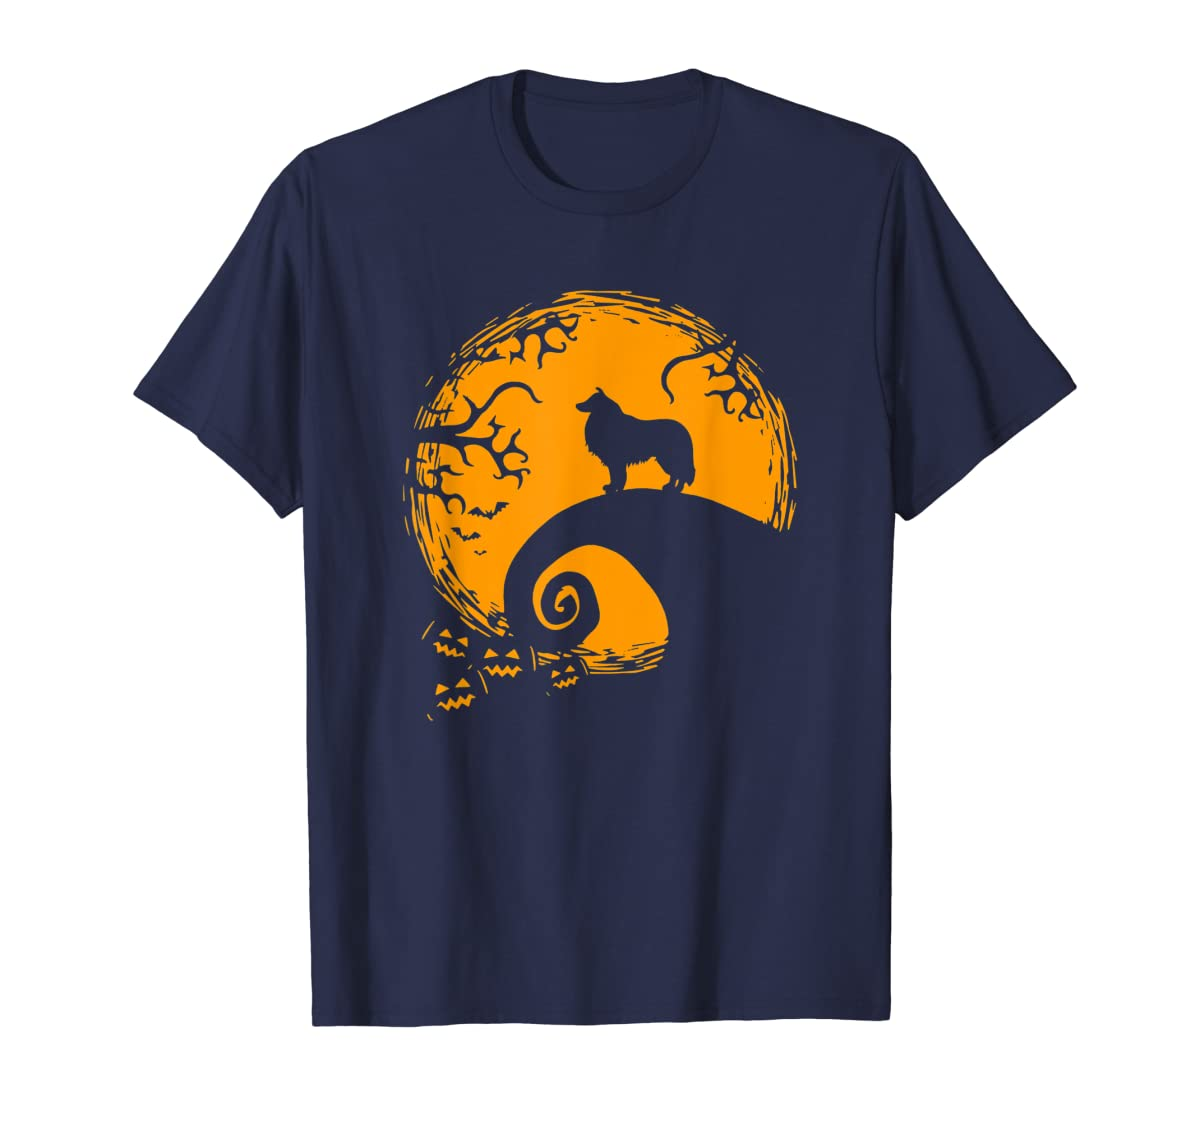 Funny Border Collie And Moon Halloween Costume Shirt-Men's T-Shirt-Navy